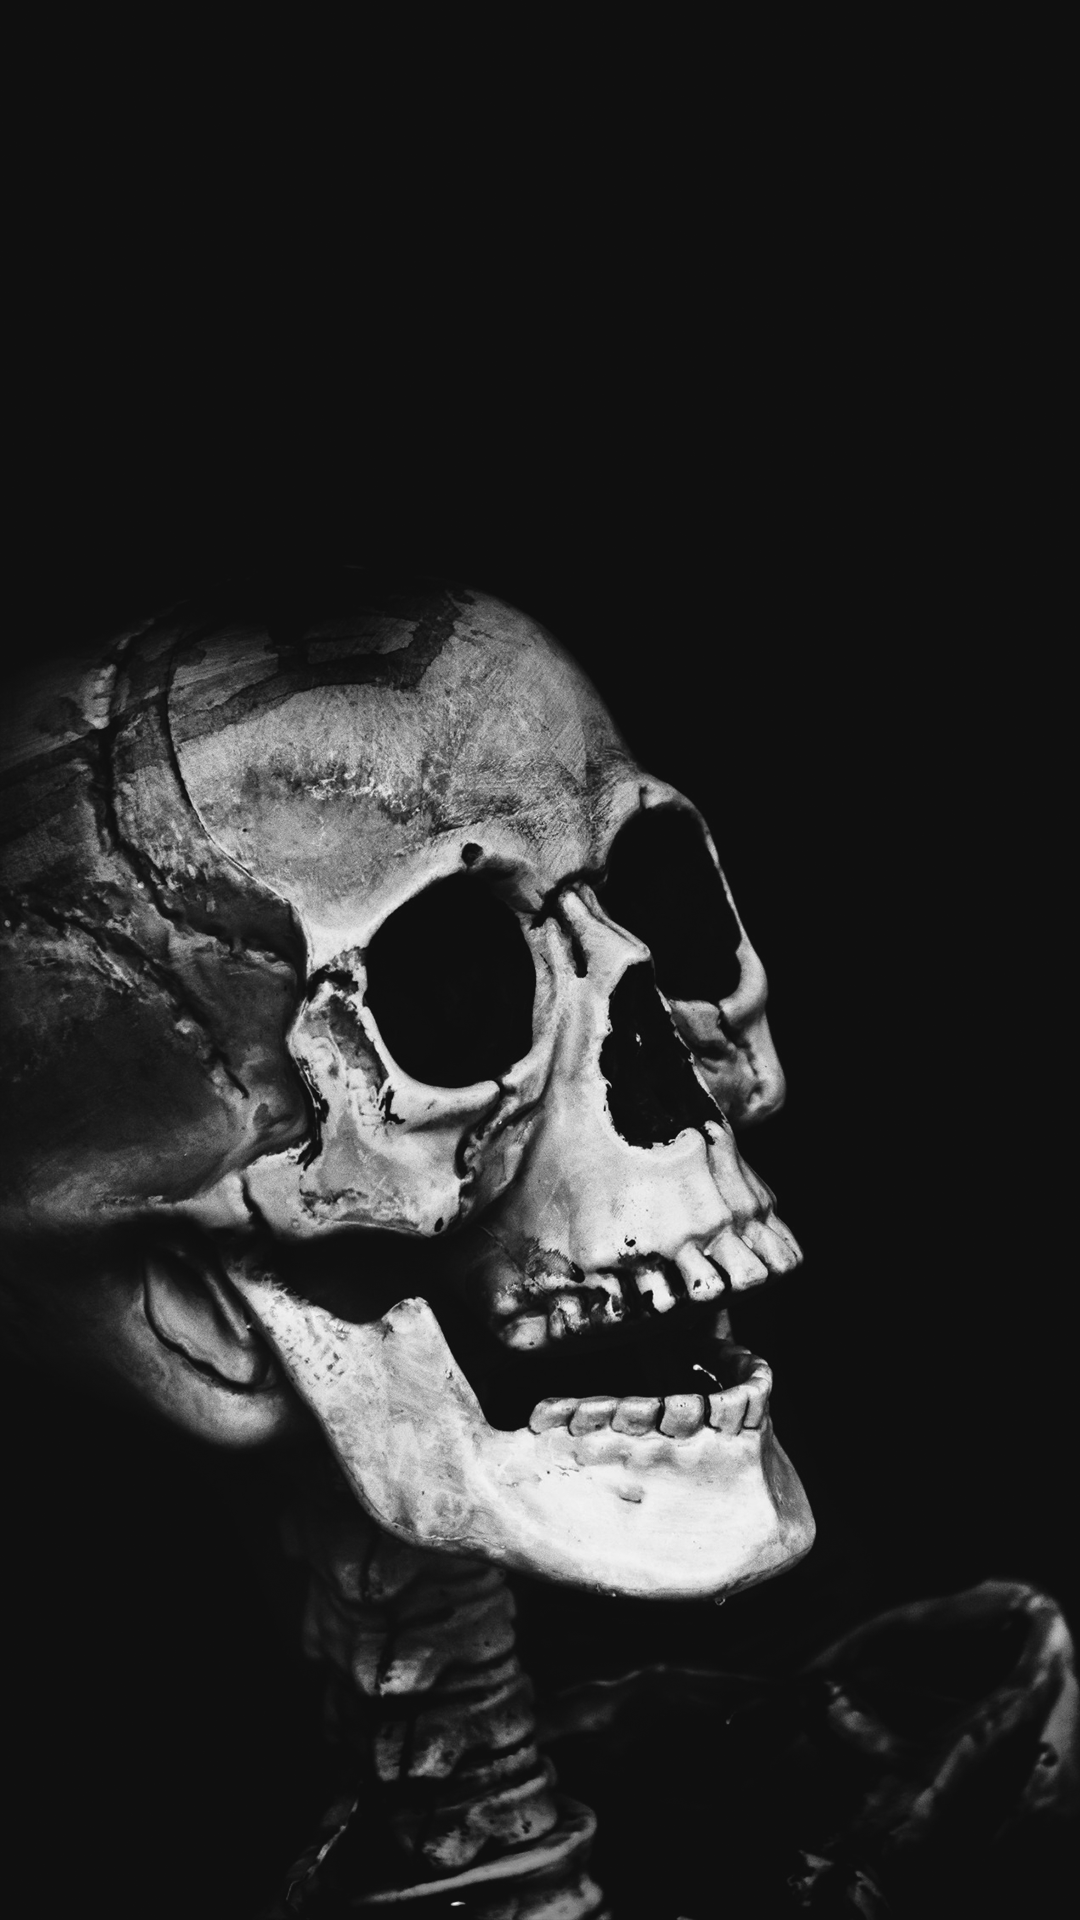 Download Our HD Classic Skull Wallpaper For Android Phones